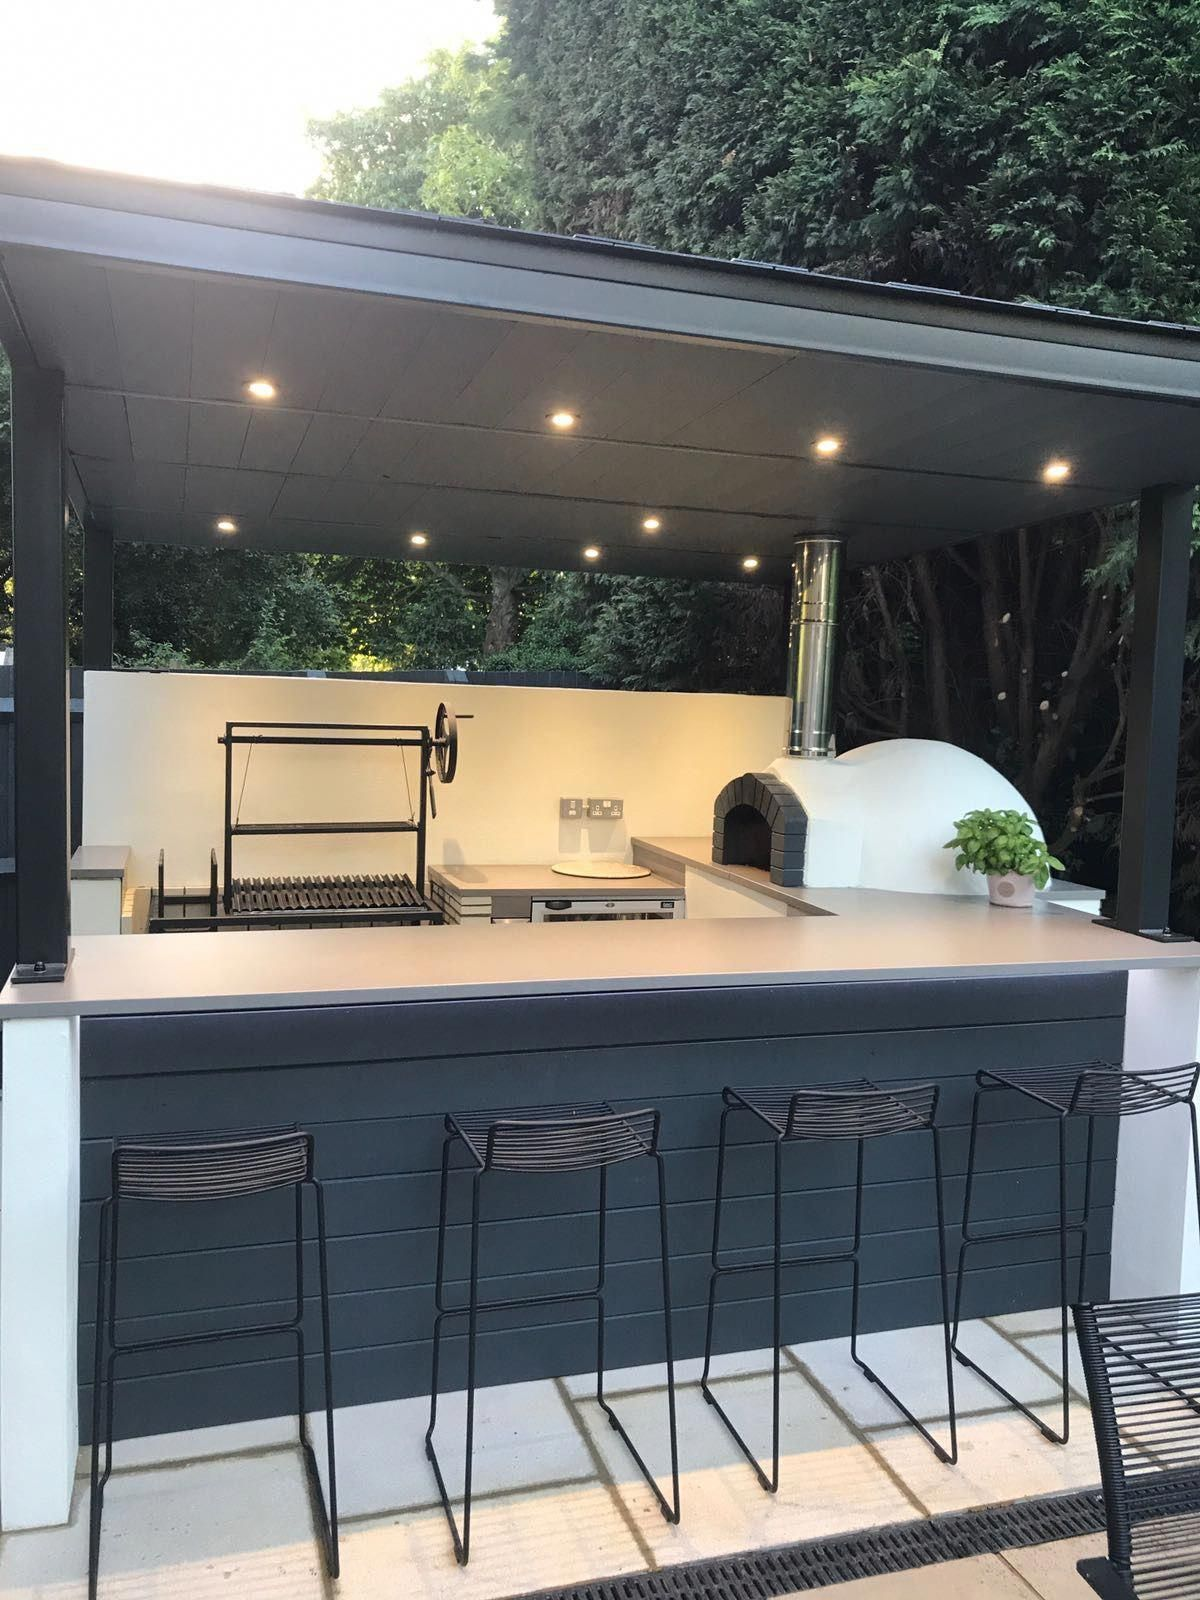 A Comprehensive Overview On Home Decoration In 2020 Small Outdoor Kitchens Pizza Oven Outdoor Pizza Oven Outdoor Kitchen